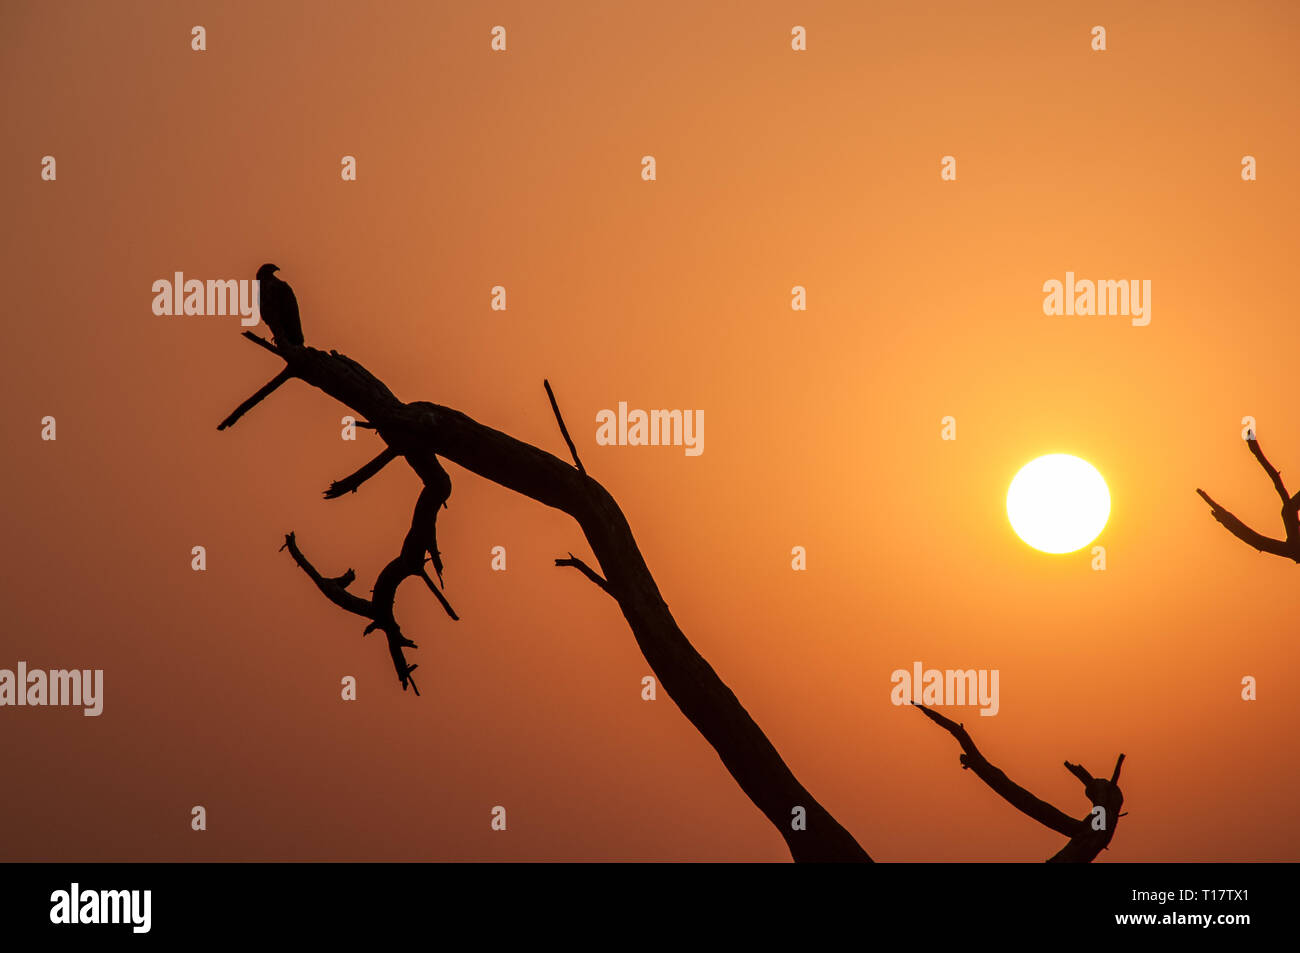 Silhouette of a bird on a branch at sunset in the Keoladeo National Park - Stock Image